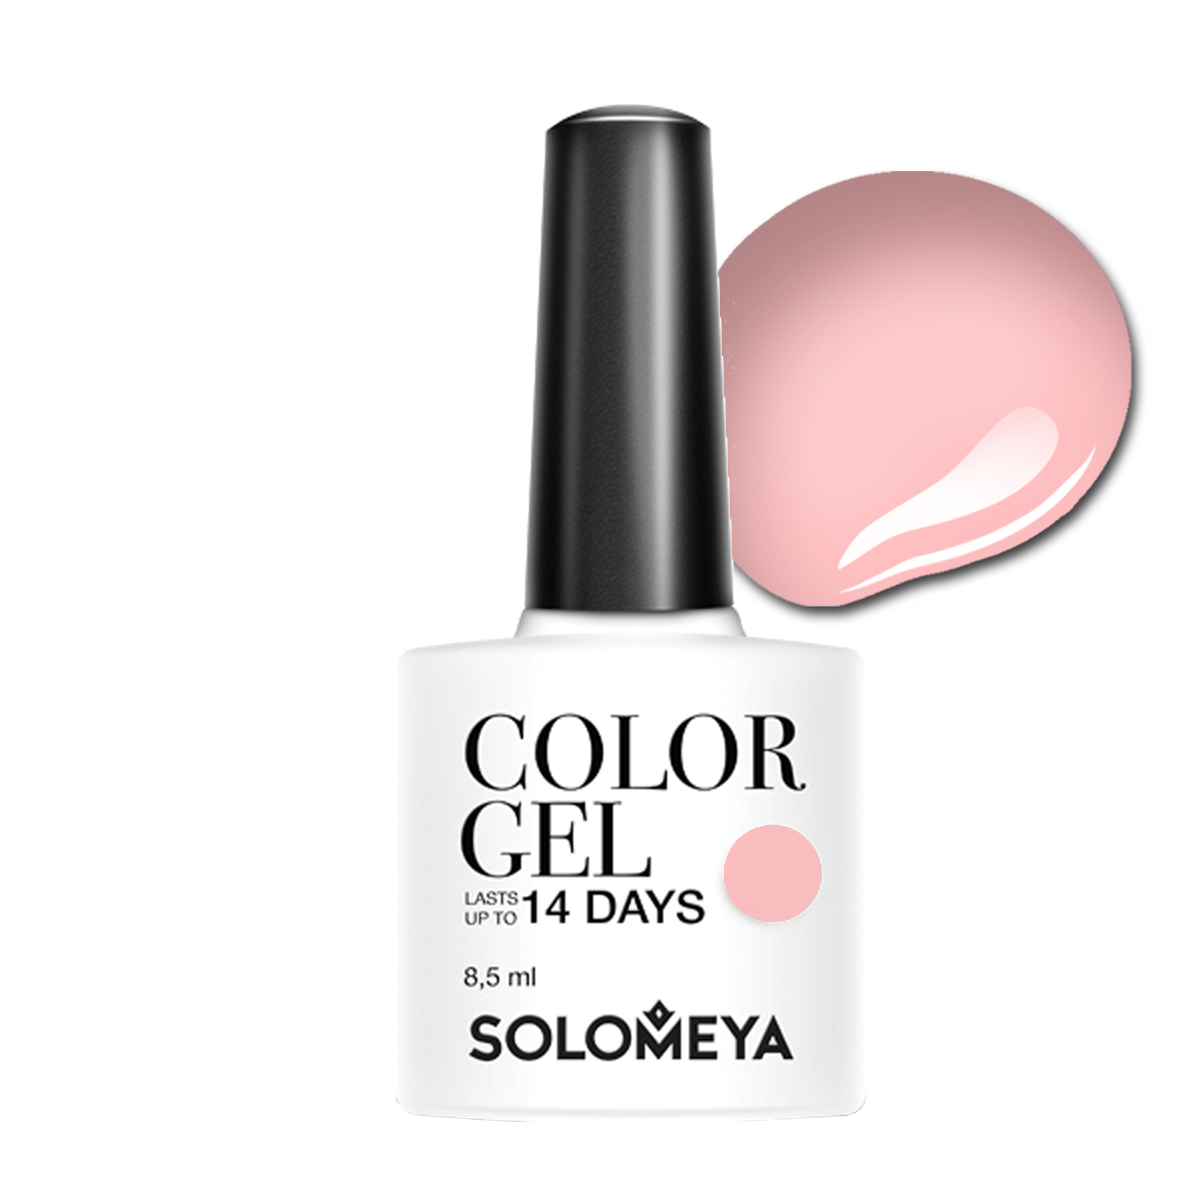 SOLOMEYA Гель-лак для ногтей SCG020 Чайная роза / Color Gel Tea Rose 8,5 мл bb крем the face shop the face shop th019lwakfl7